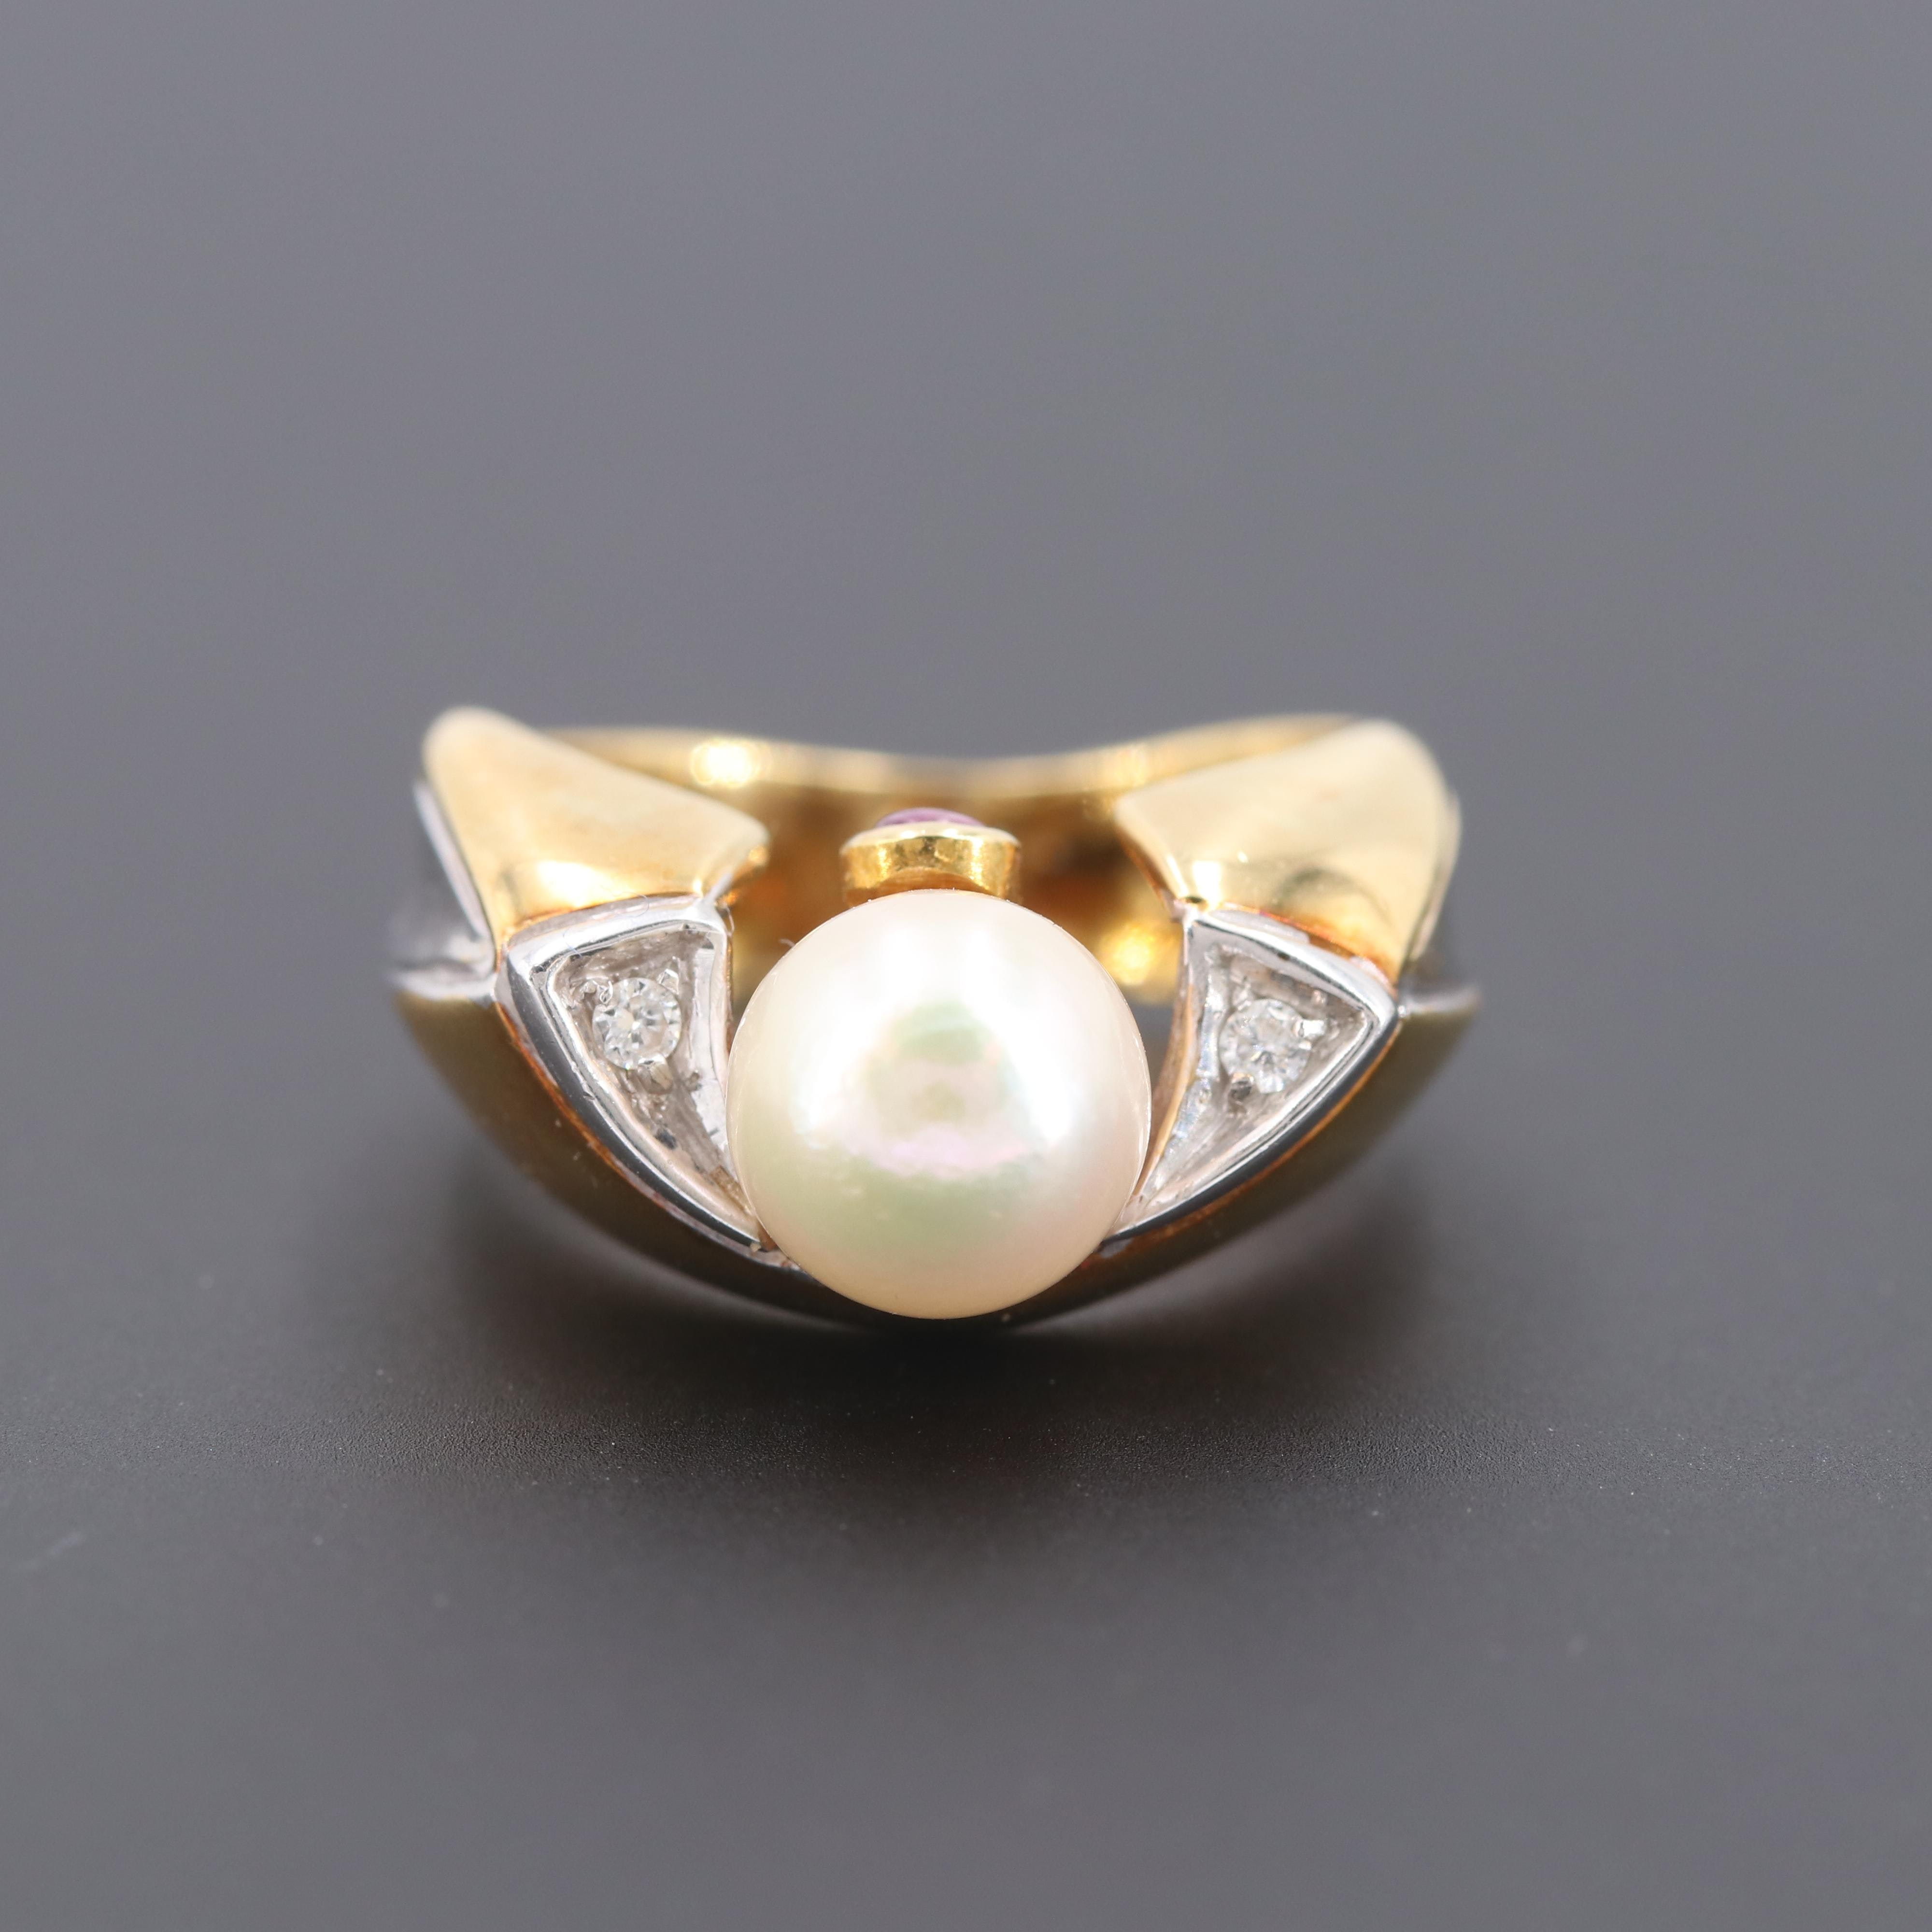 18K Yellow Gold Cultured Pearl, Diamond and Ruby Ring